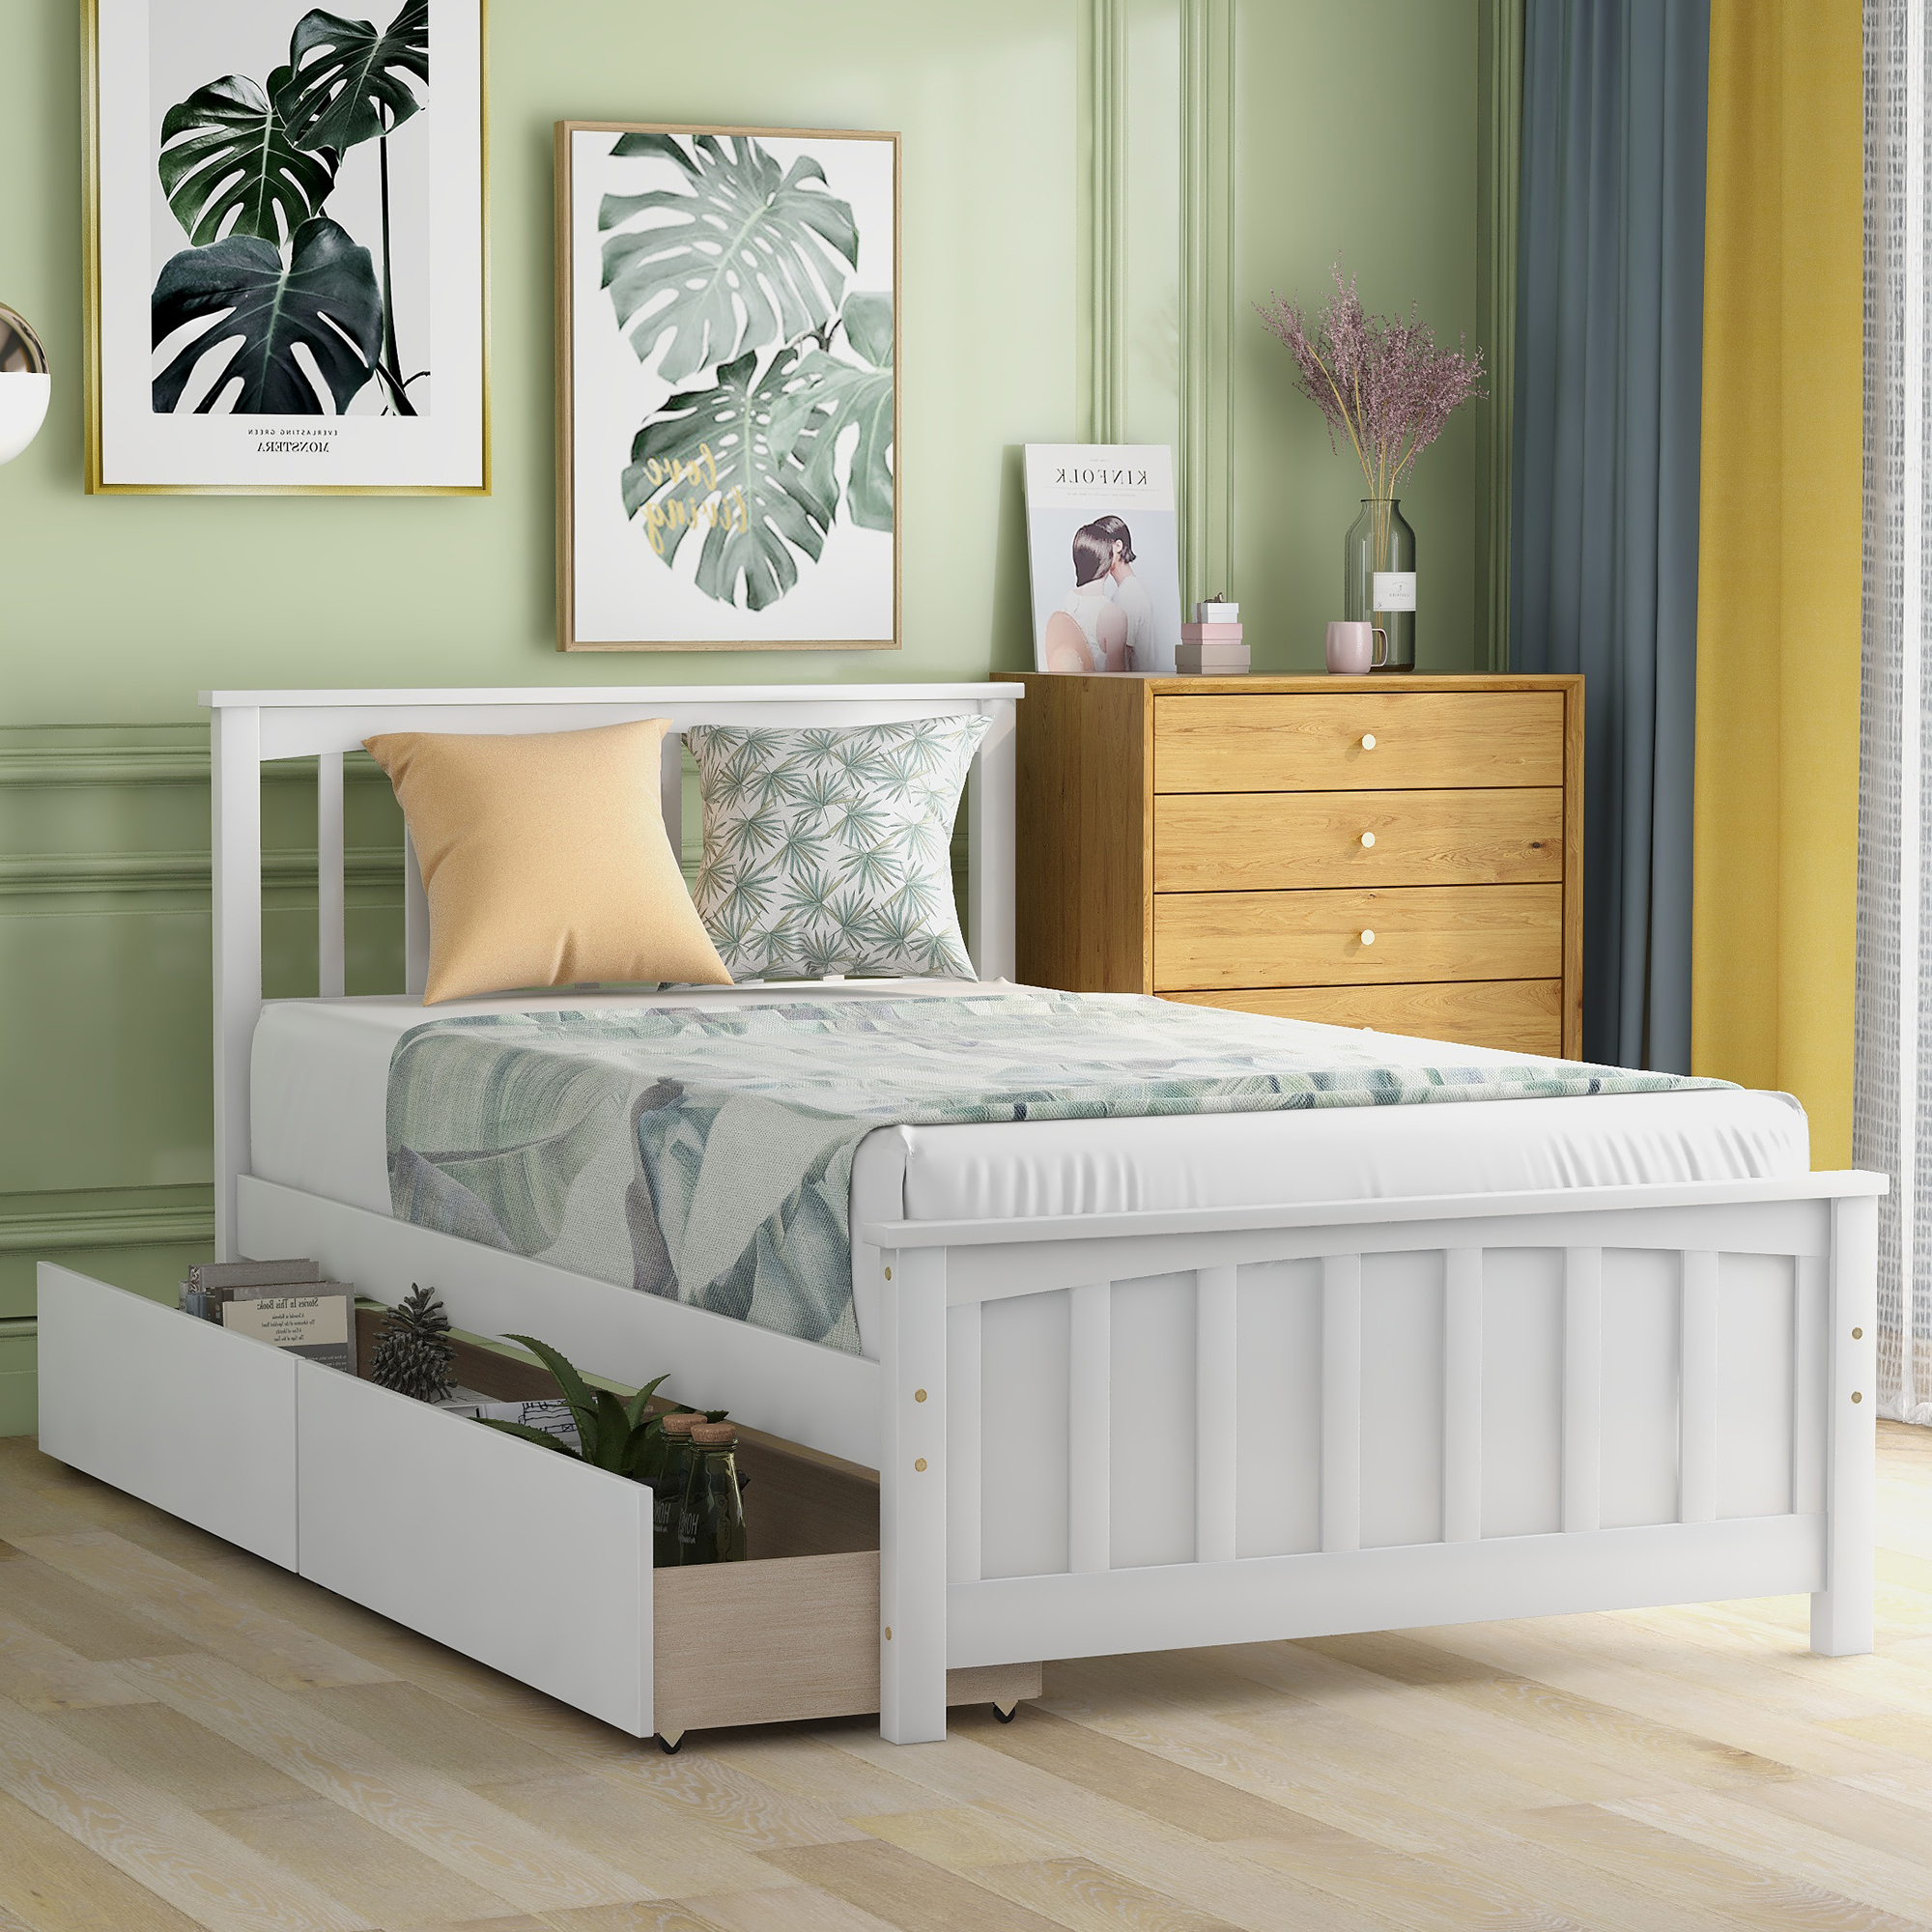 Twin size Platform Bed with Two Drawers, White - Walmart ...